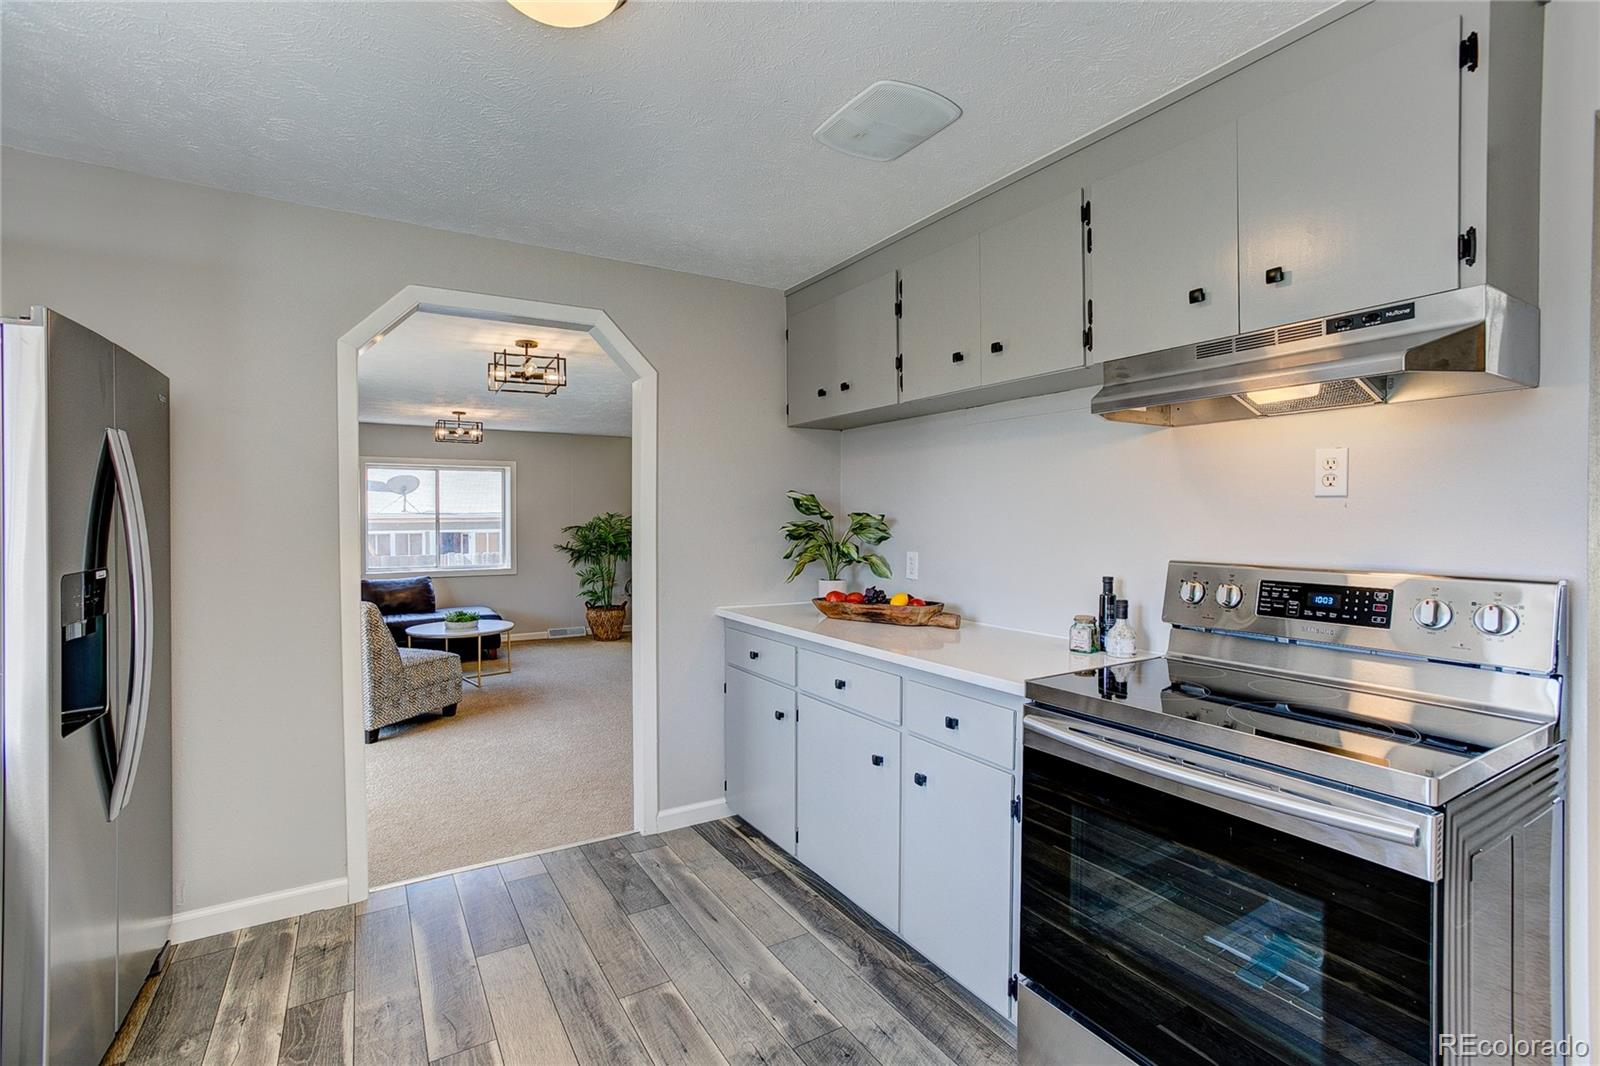 MLS# 9710462 - 10 - 1250 W 7th Ave Dr, Broomfield, CO 80020